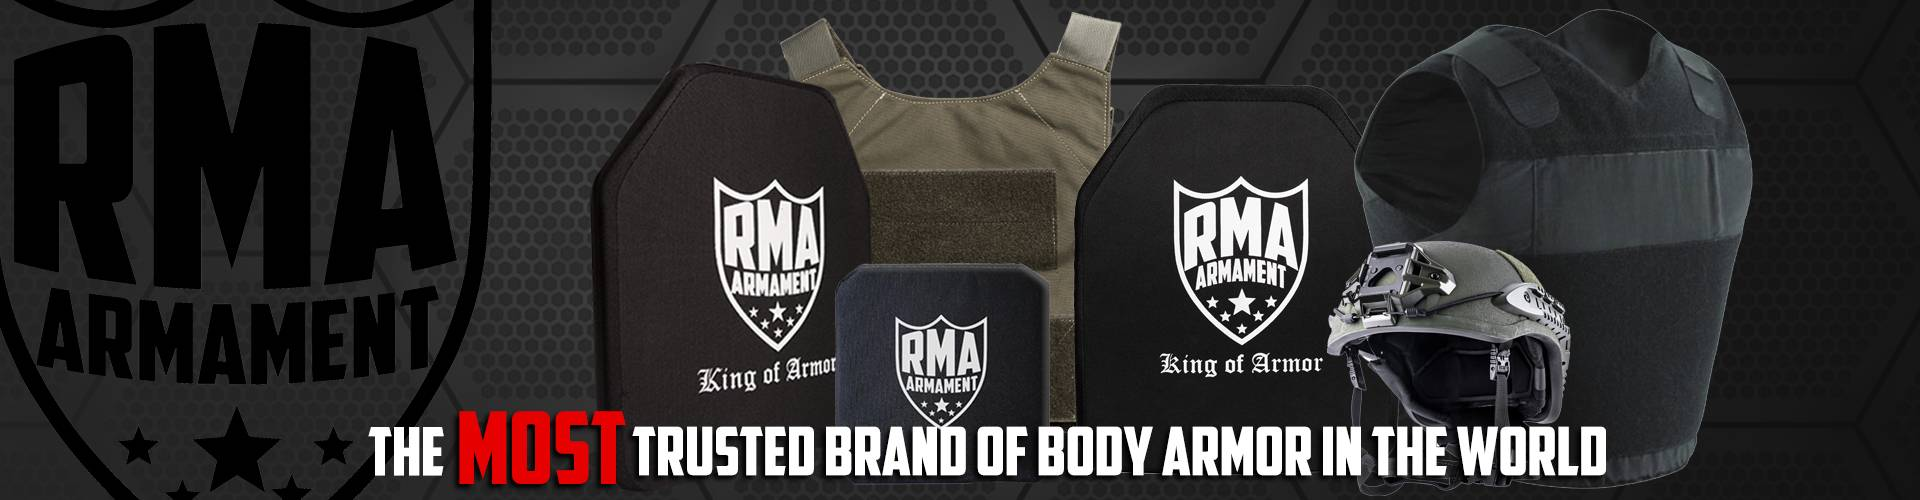 The Most Trusted Brand of Armor